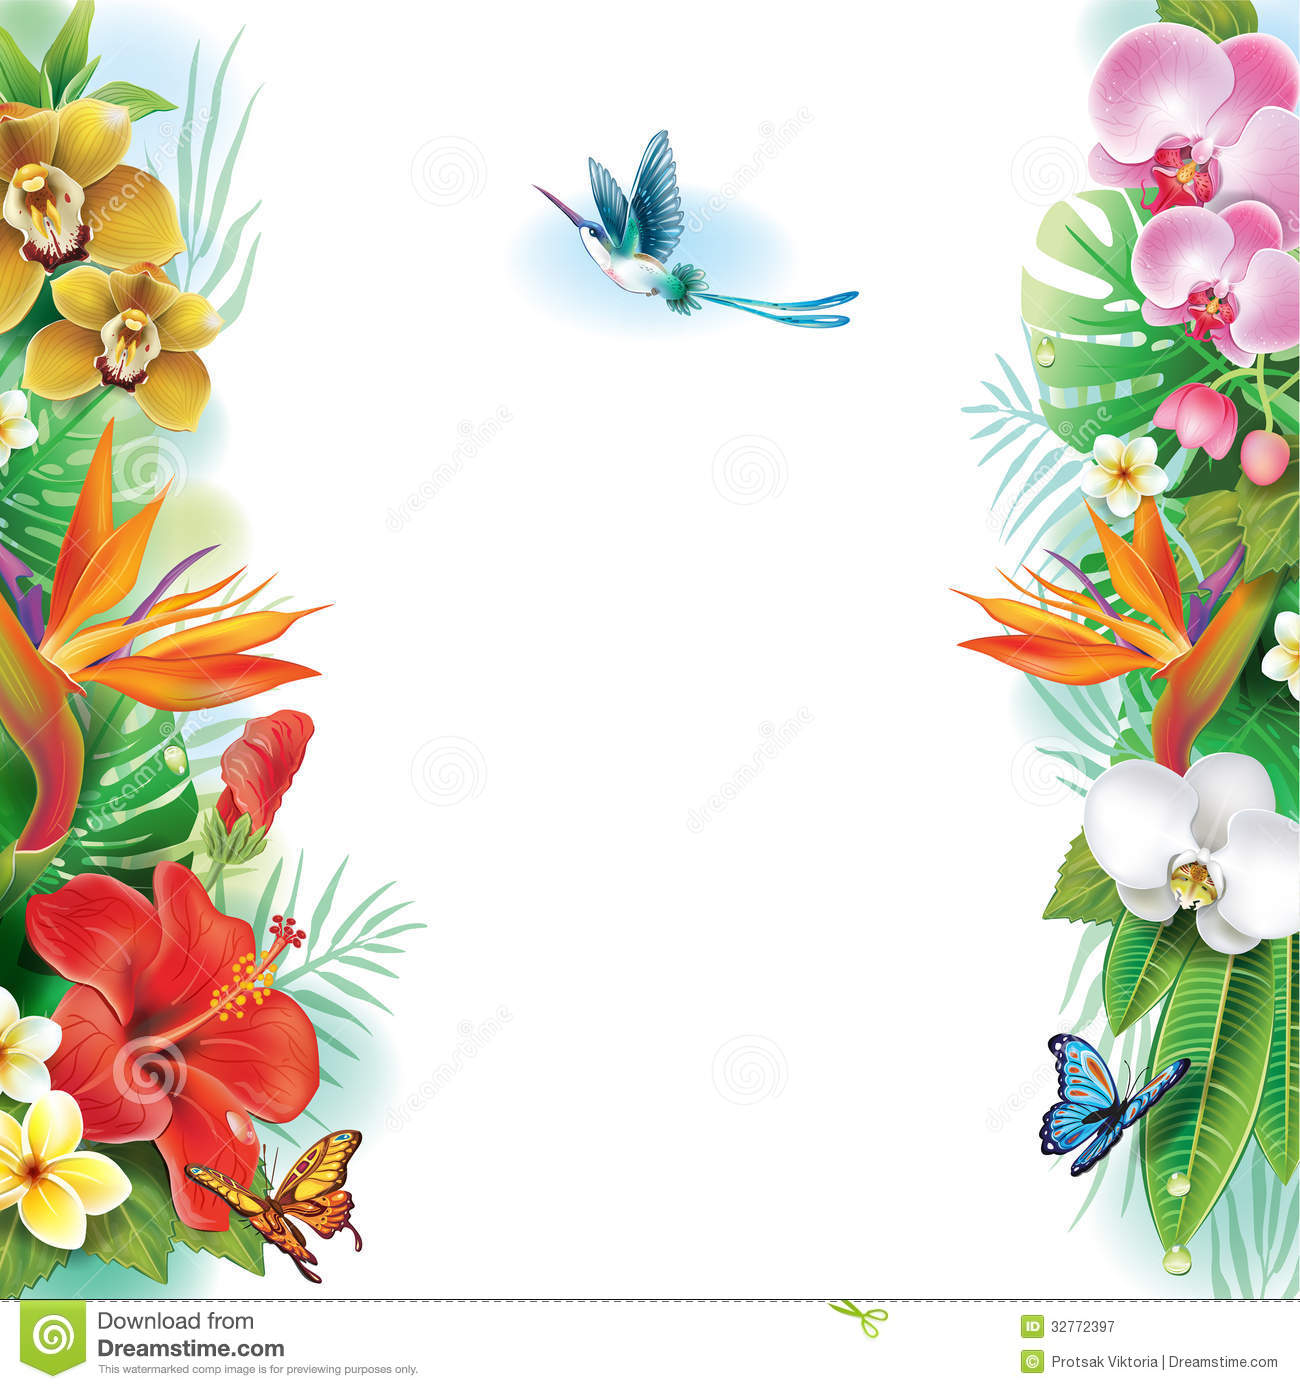 Flower Border Clipart Clipart Suggest